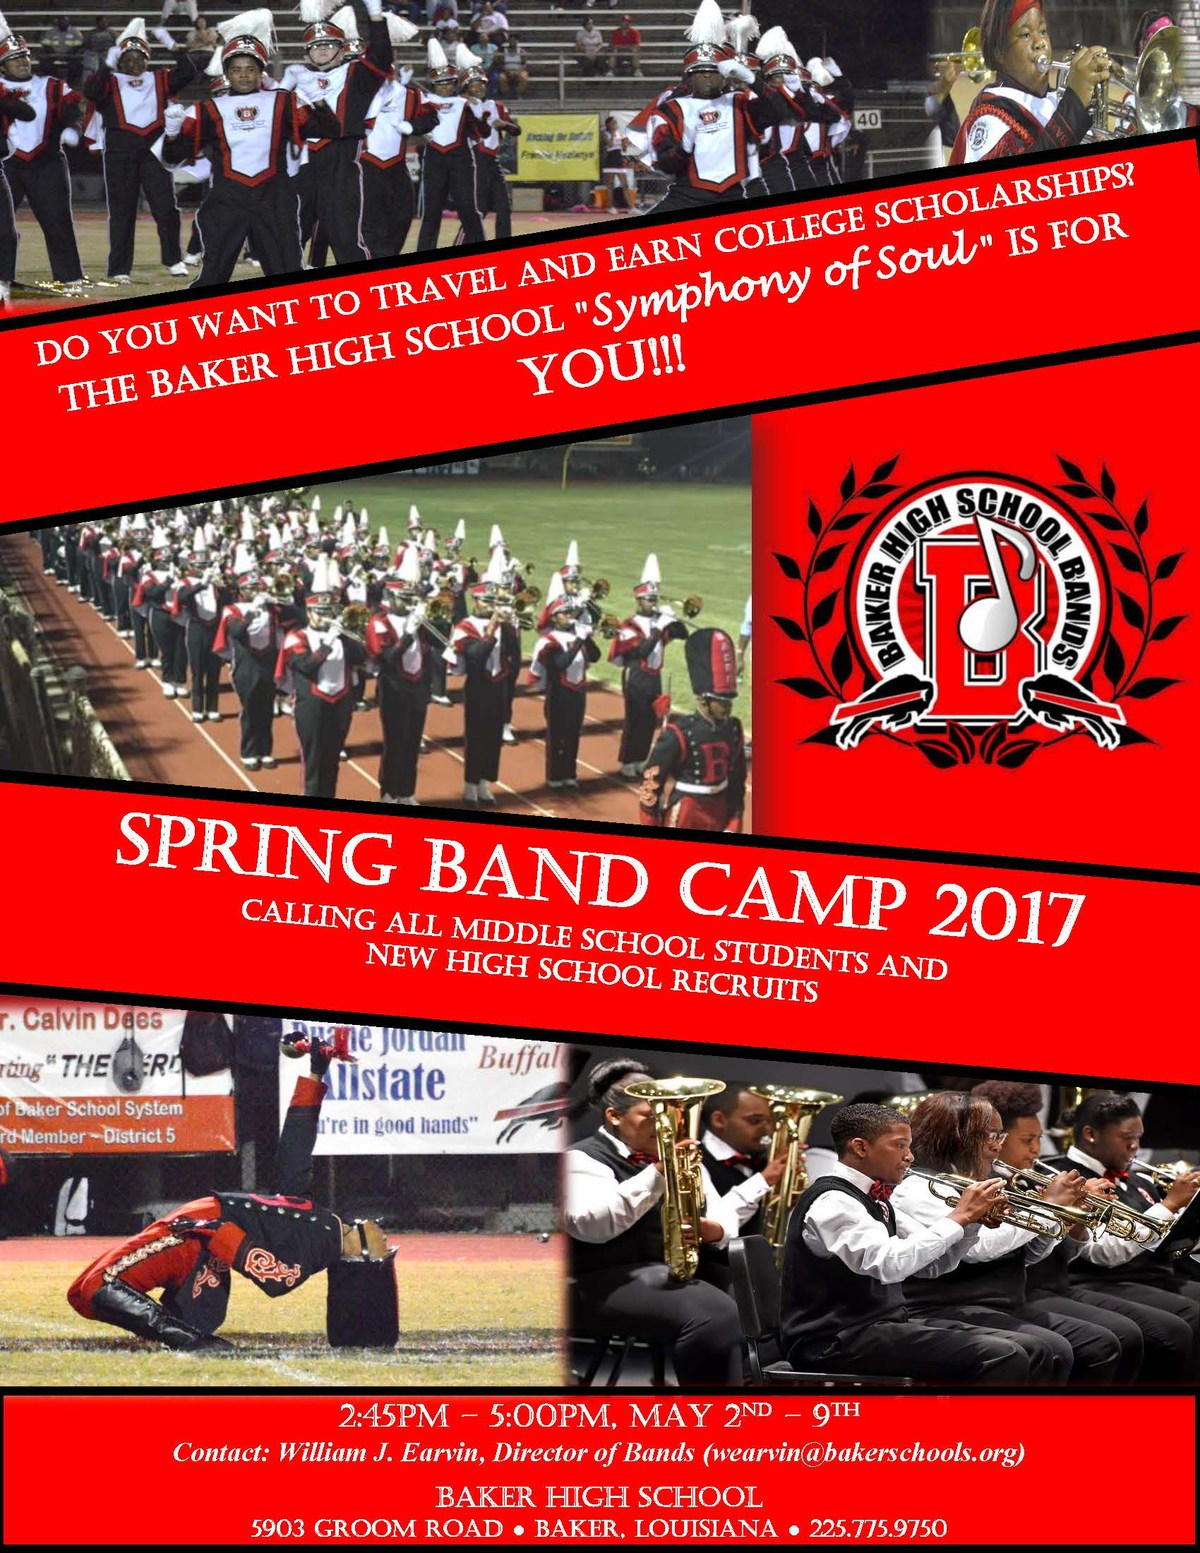 Baker High School Band Flyer Advertising the 2017 Spring Band Camp - May 2nd - 9th